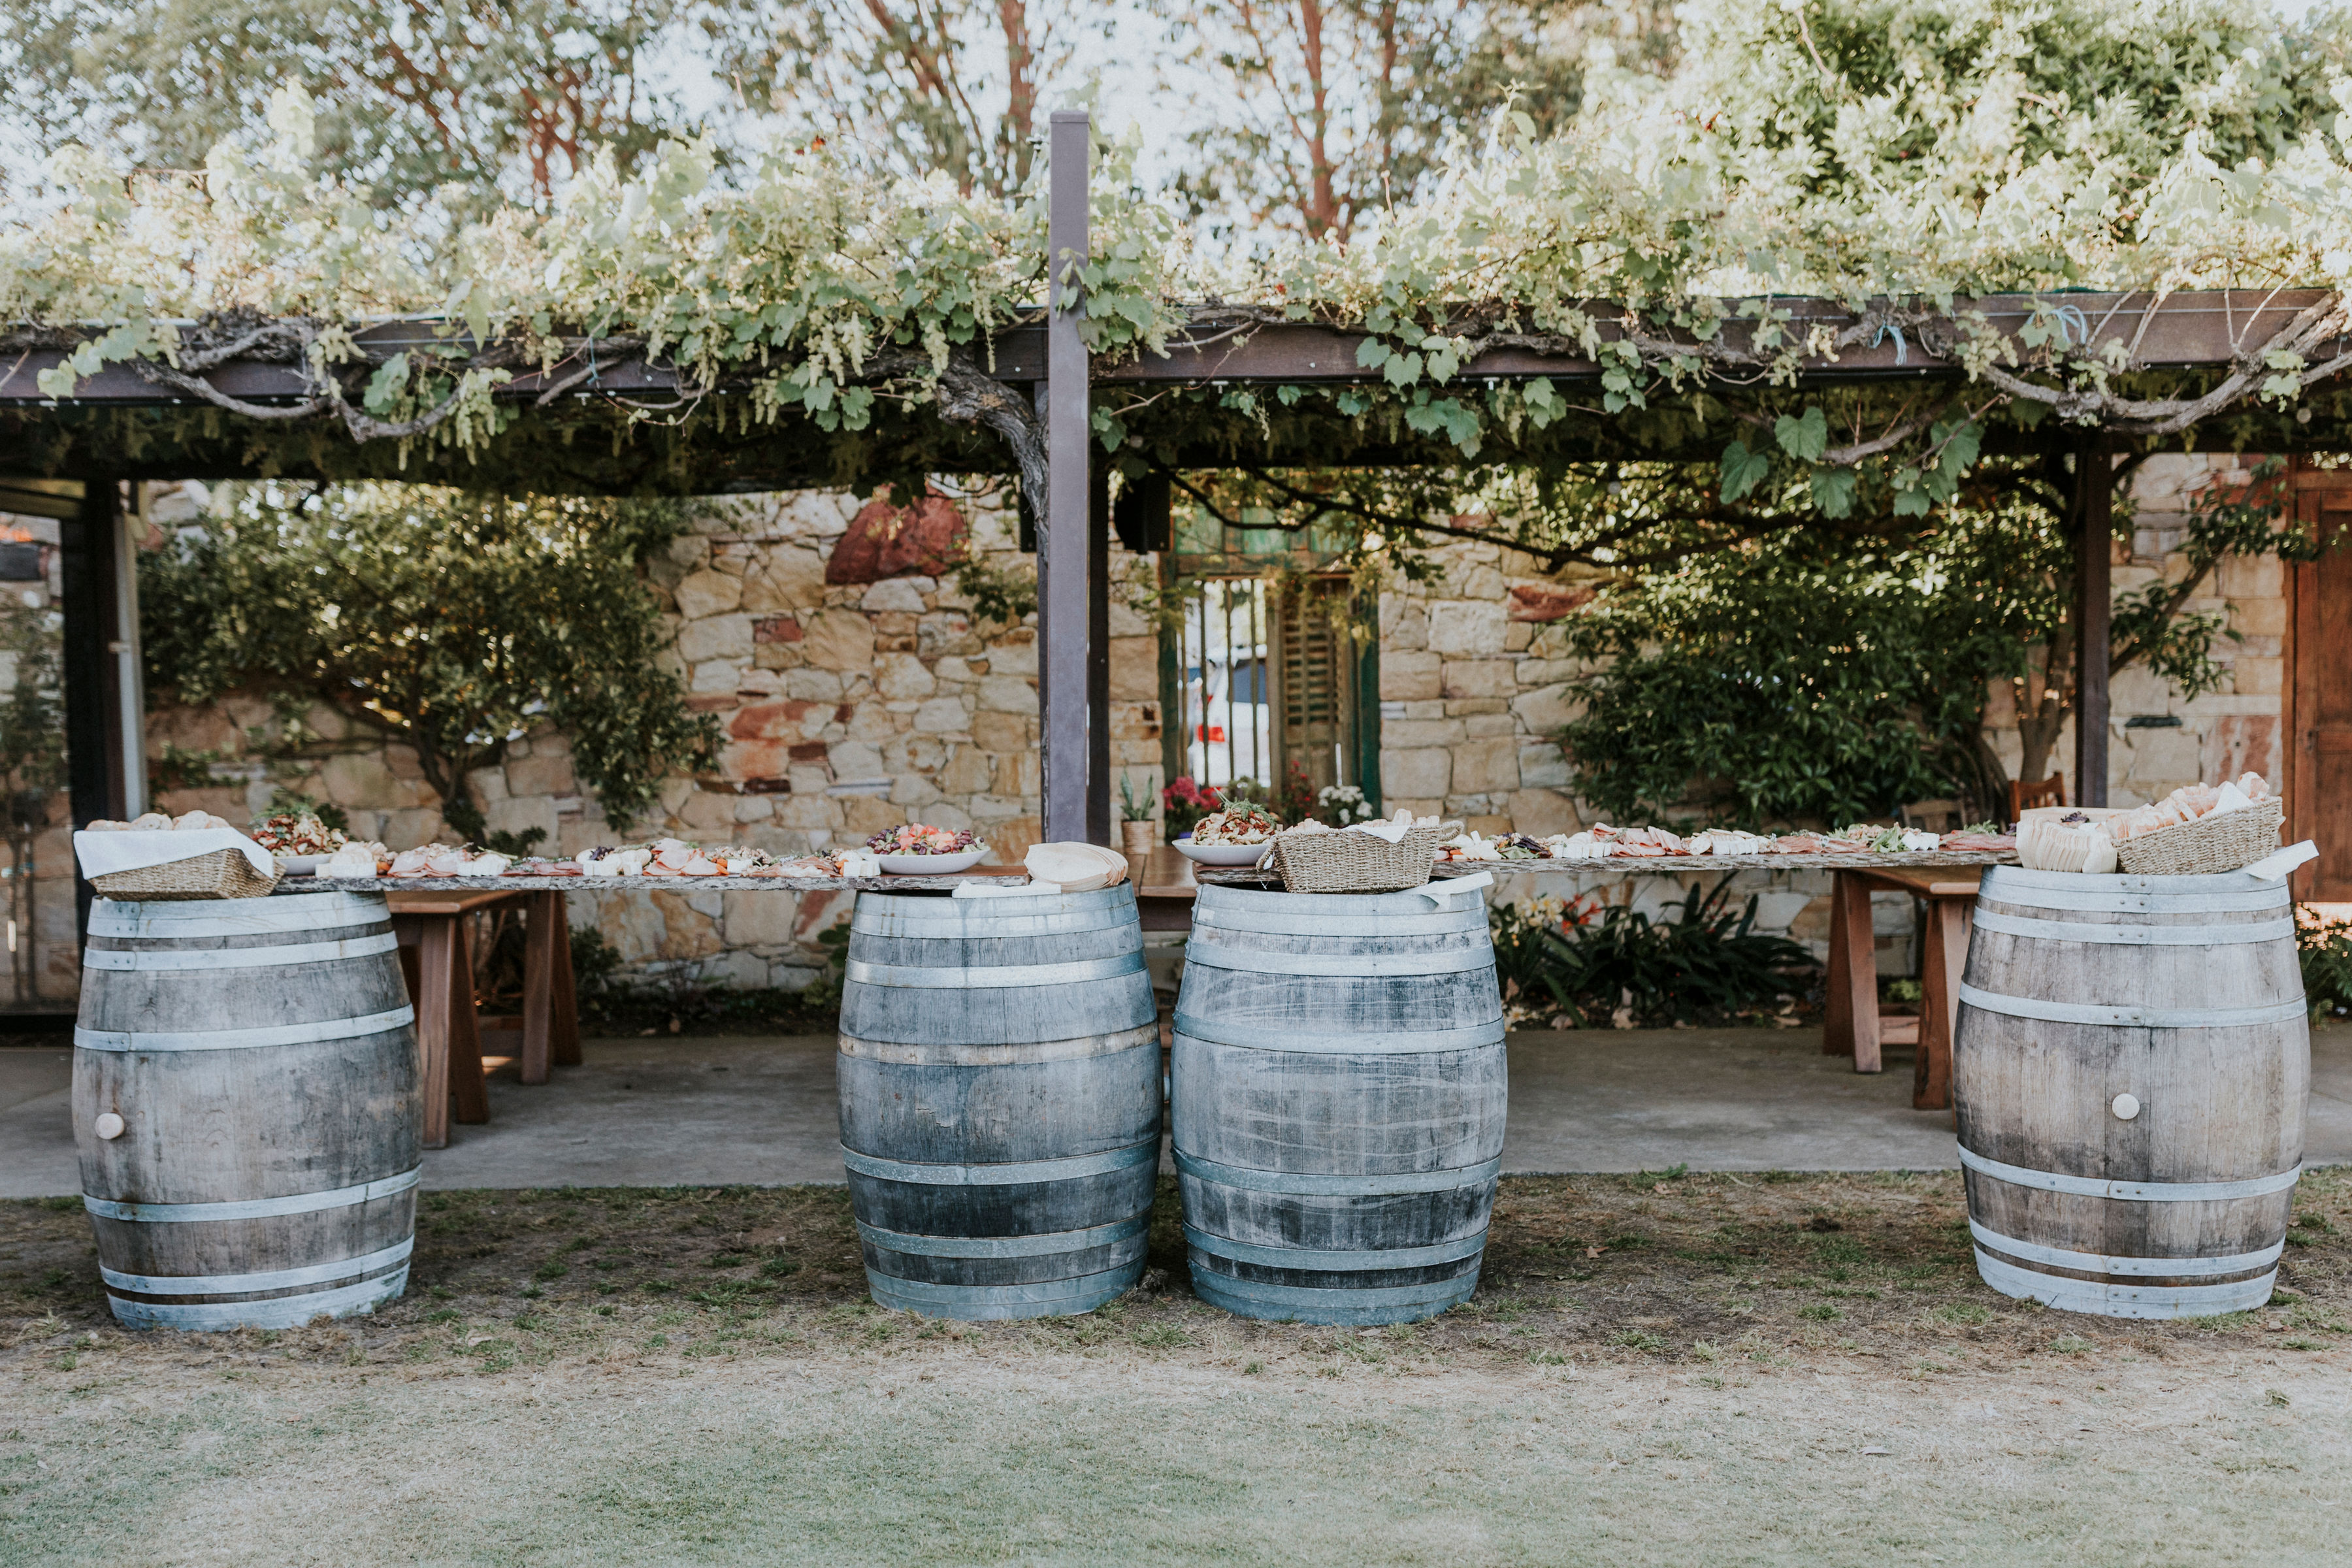 Perth Wedding Grazing Tables